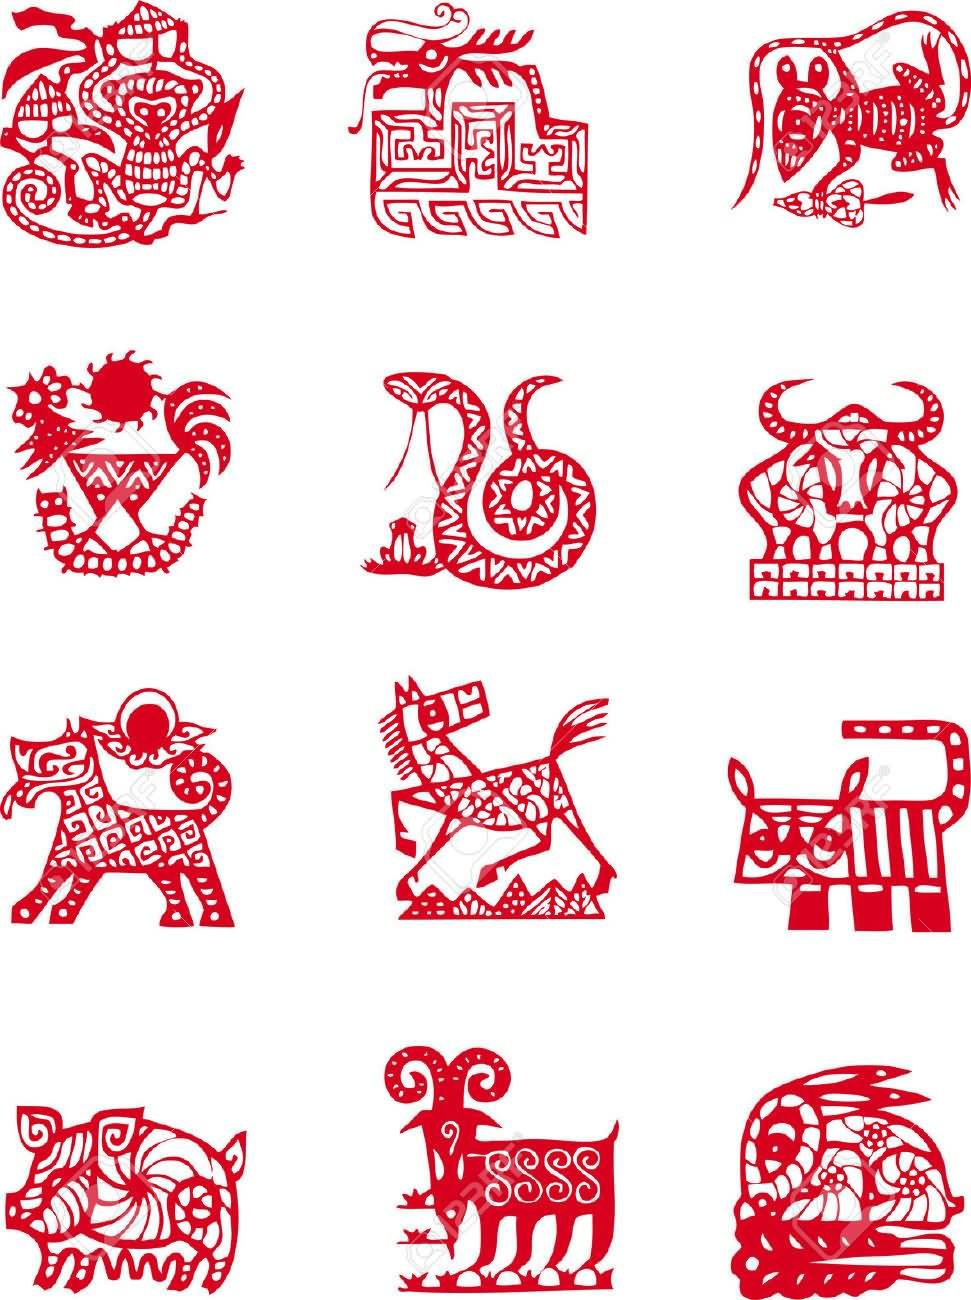 Red Chinese Zodiac Symbol Tattoo Design Chinese Zodiac Signs Zodiac Tattoos Astrology Tattoo